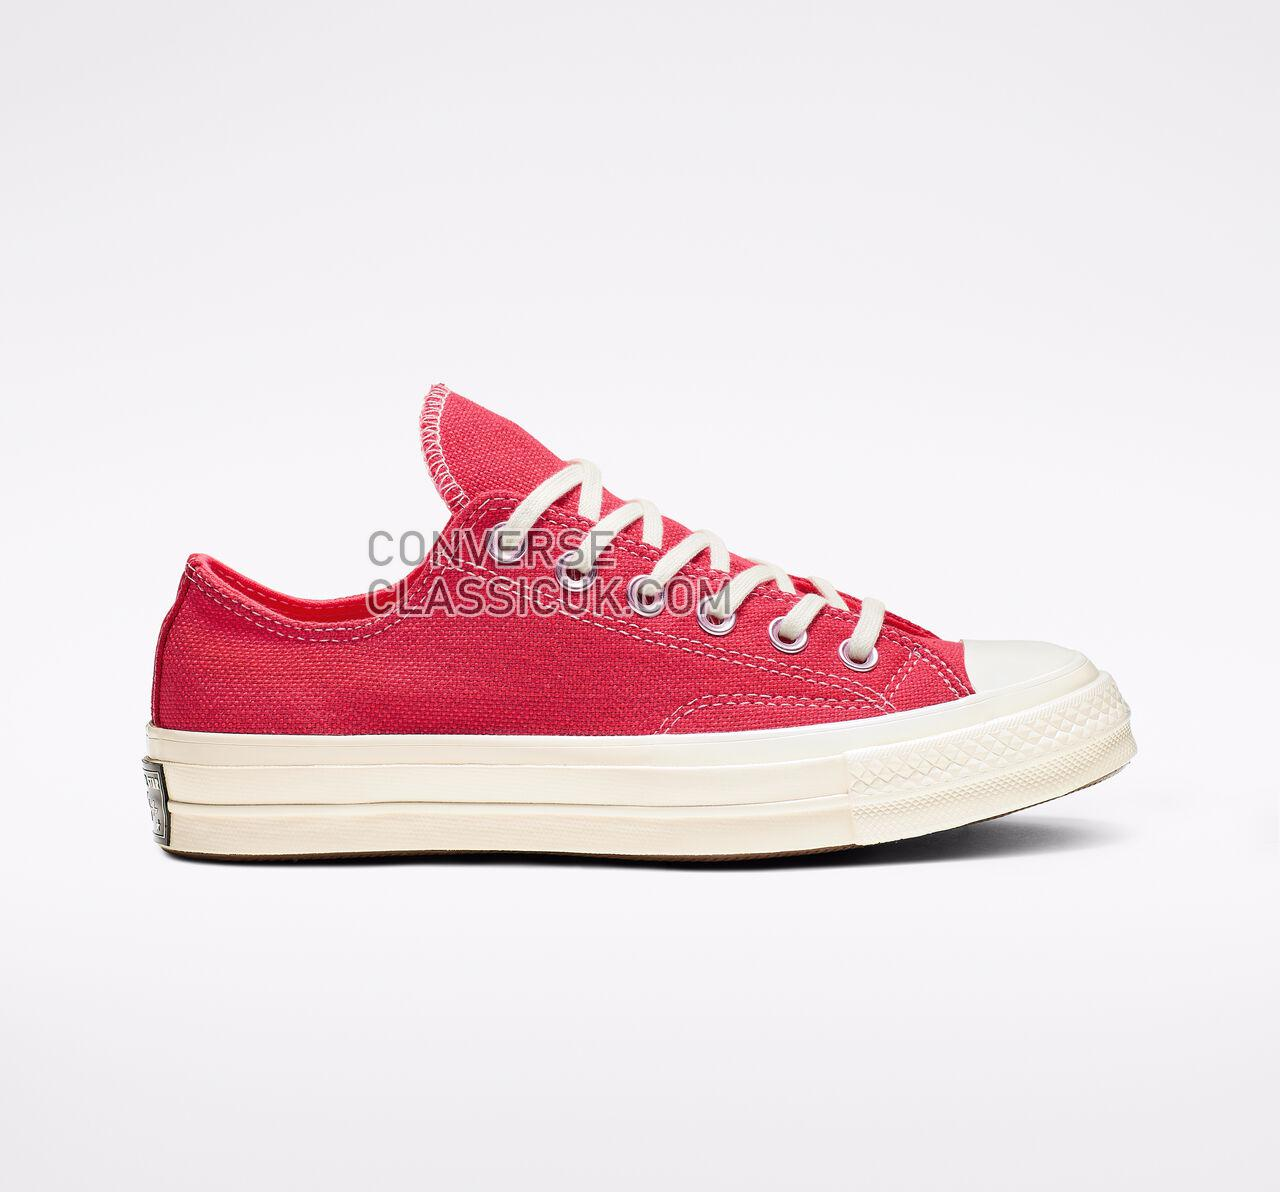 Converse Chuck 70 Carnival Lights Low Top Womens 564130C Racer Pink/Enamel Red/Egret Shoes